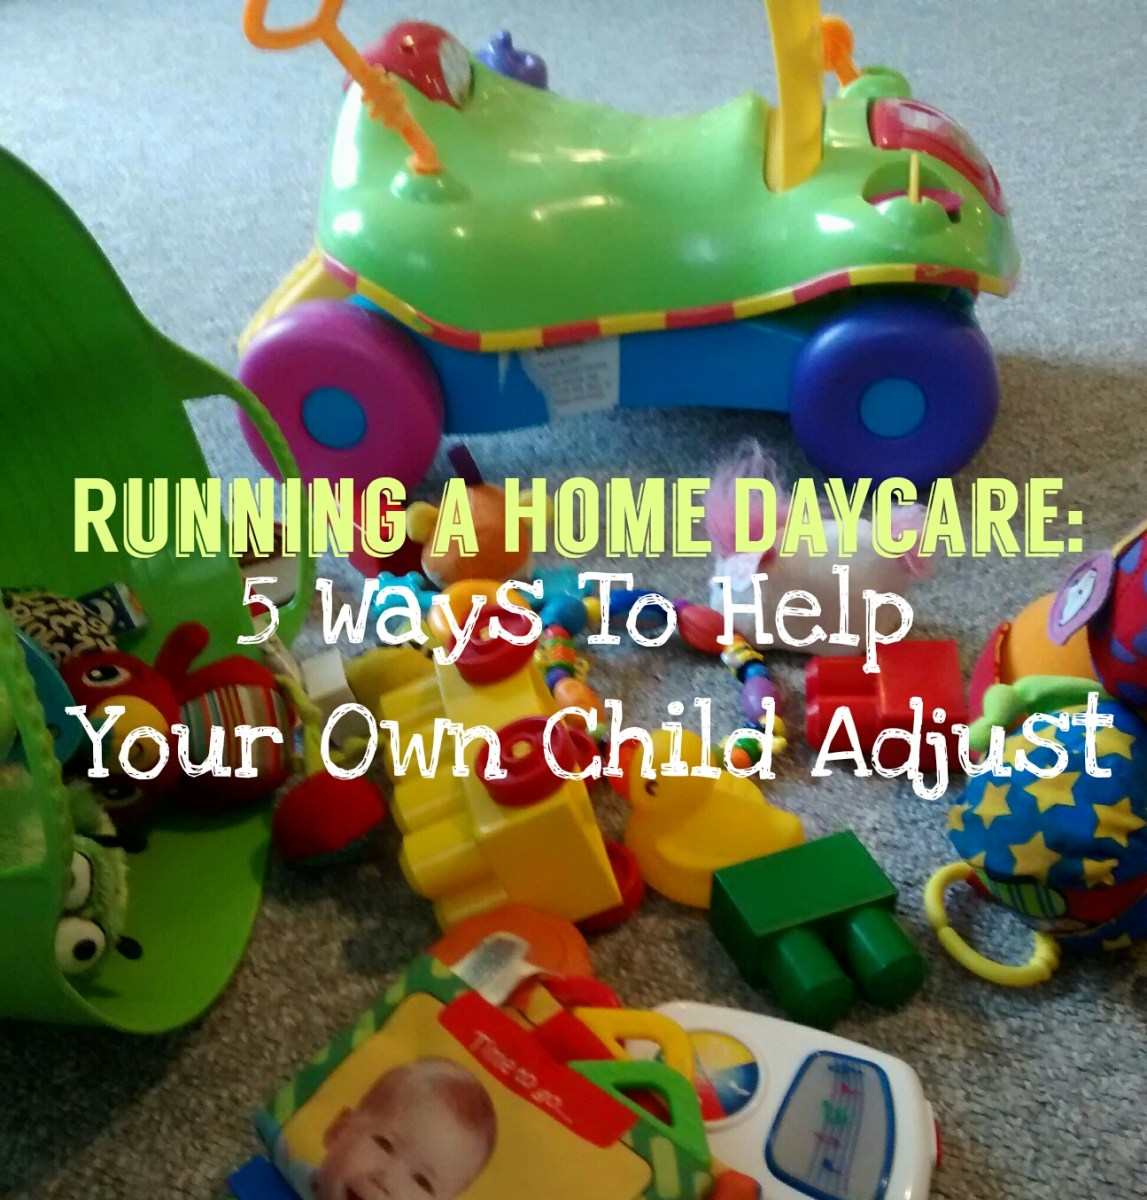 Running a Home Daycare: 5 Ways To Help Your Own Child Adjust